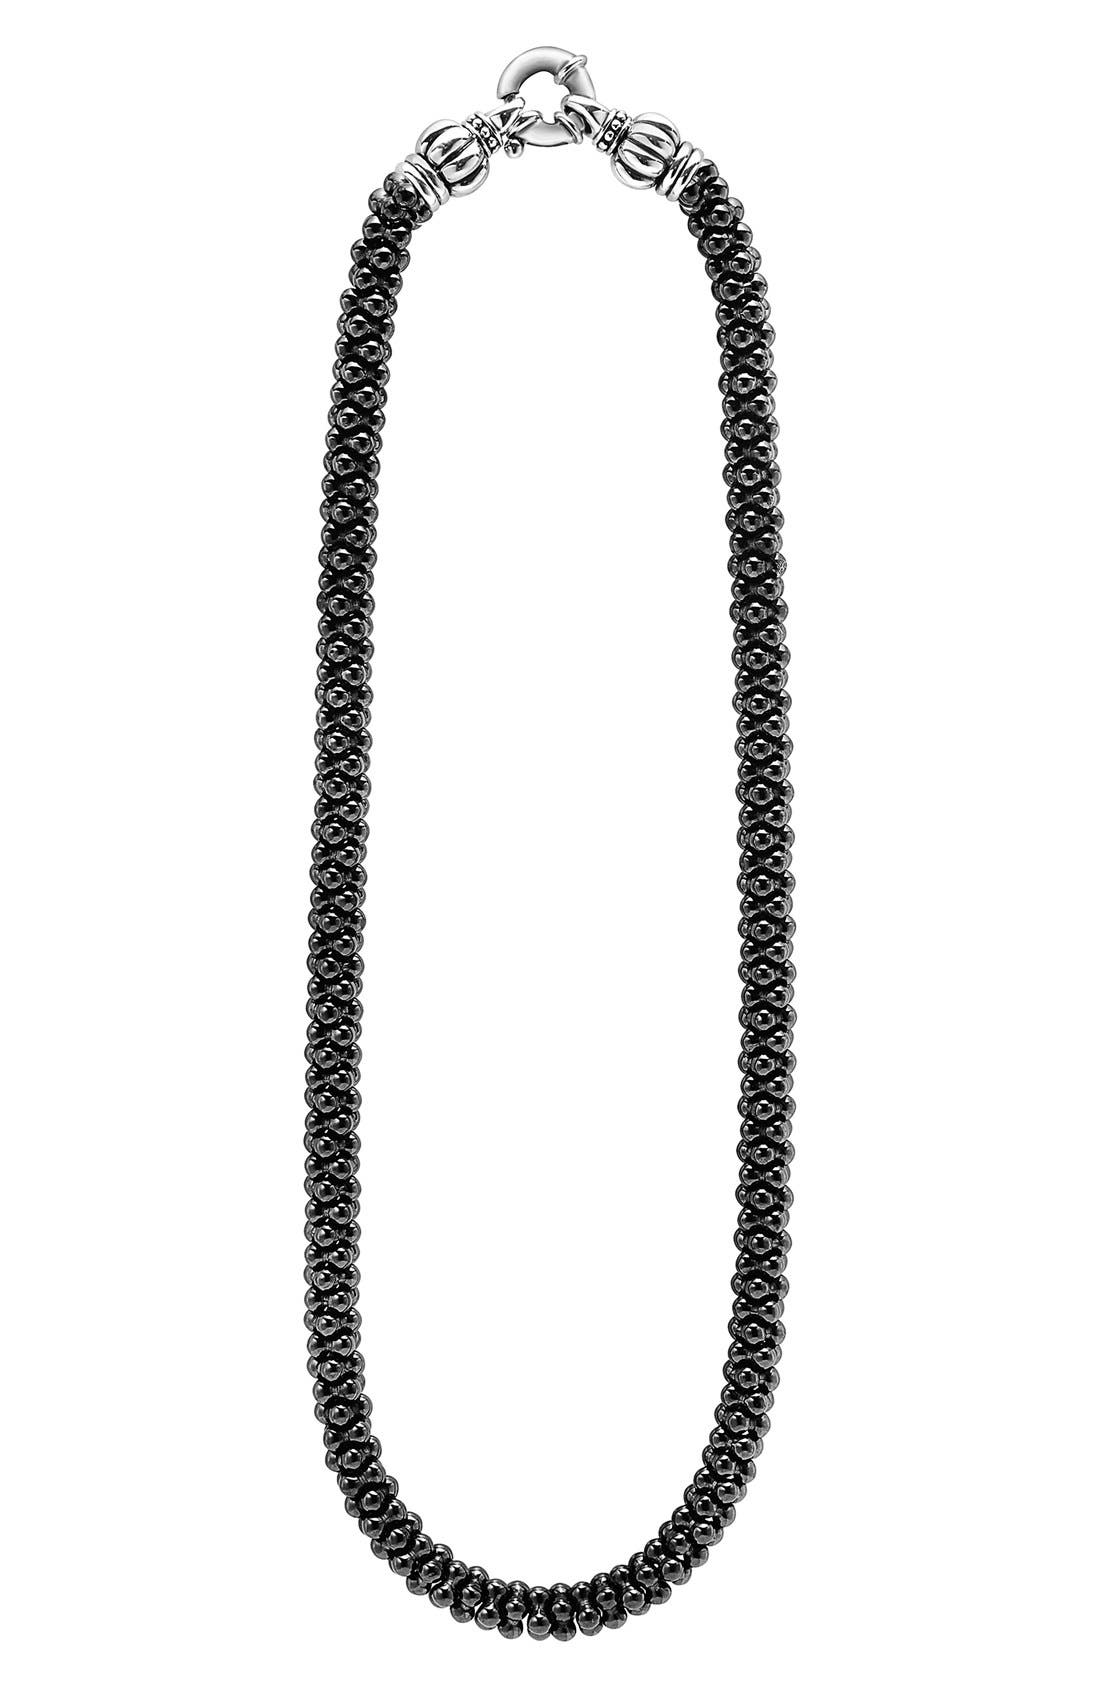 'Black Caviar' 7mm Beaded Necklace,                         Main,                         color, Black Caviar